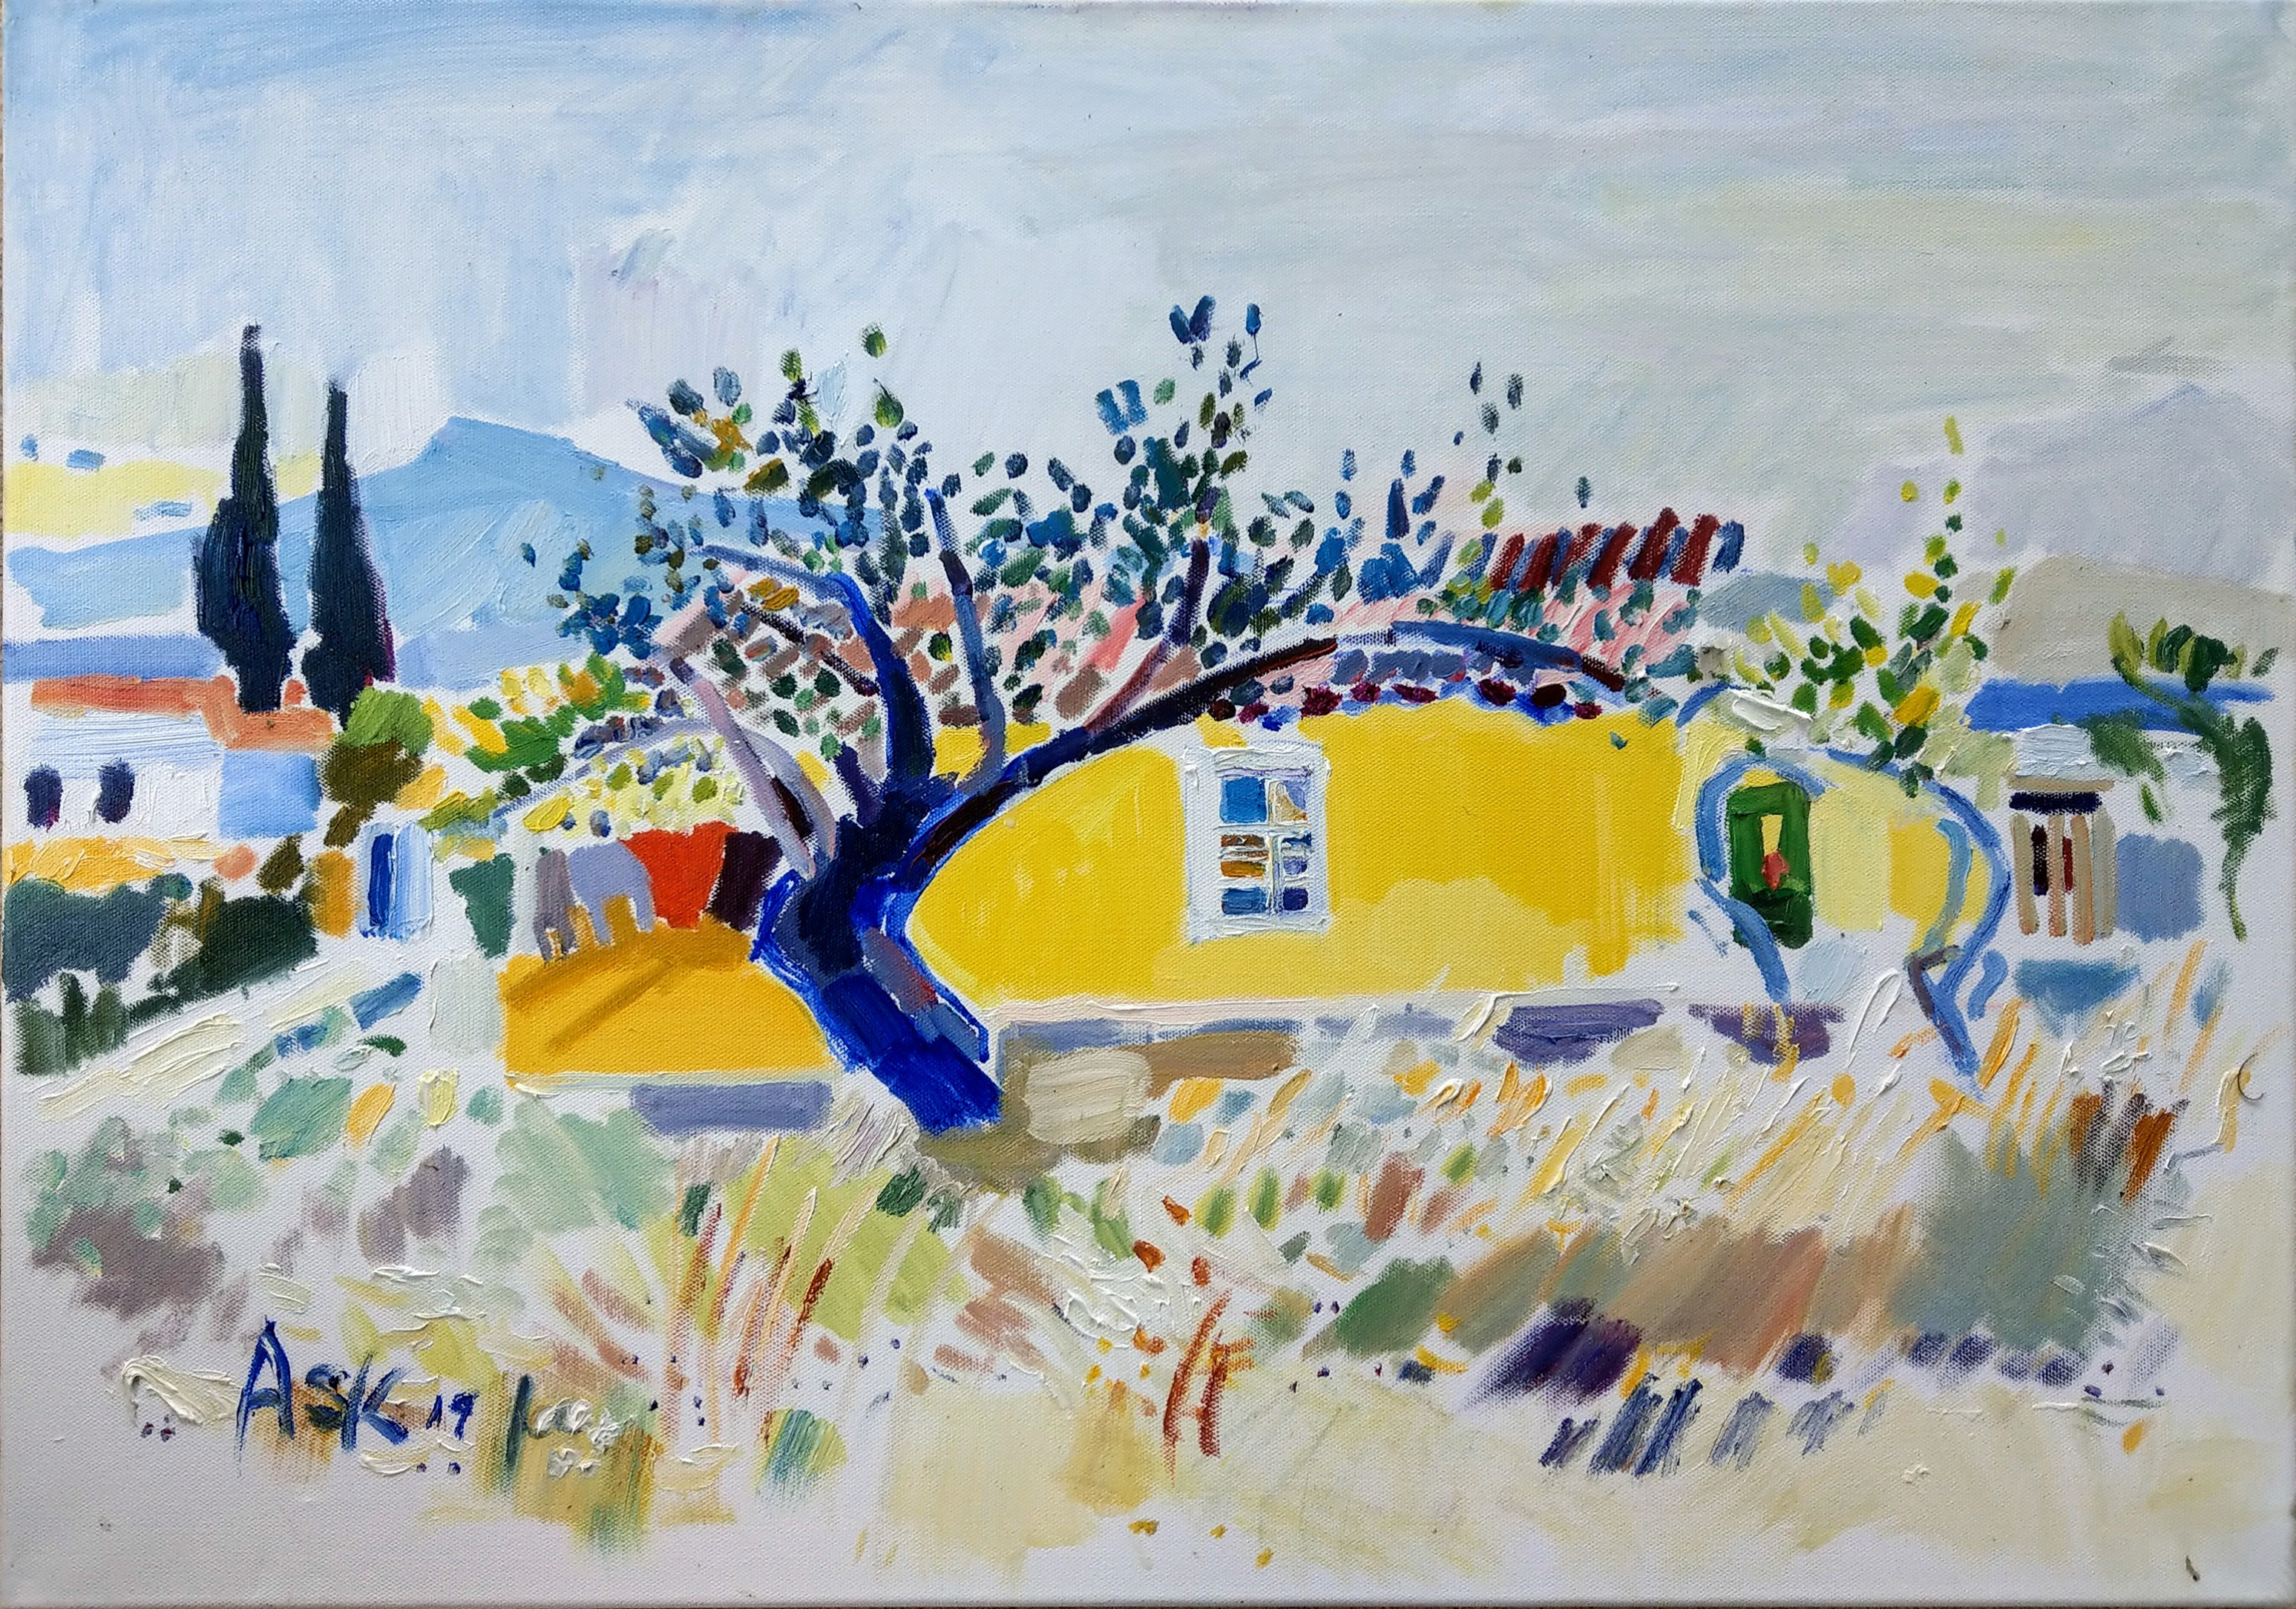 The Yellow House  - oil on canvass - by Ask. 2019 600 x 400 mm approximately